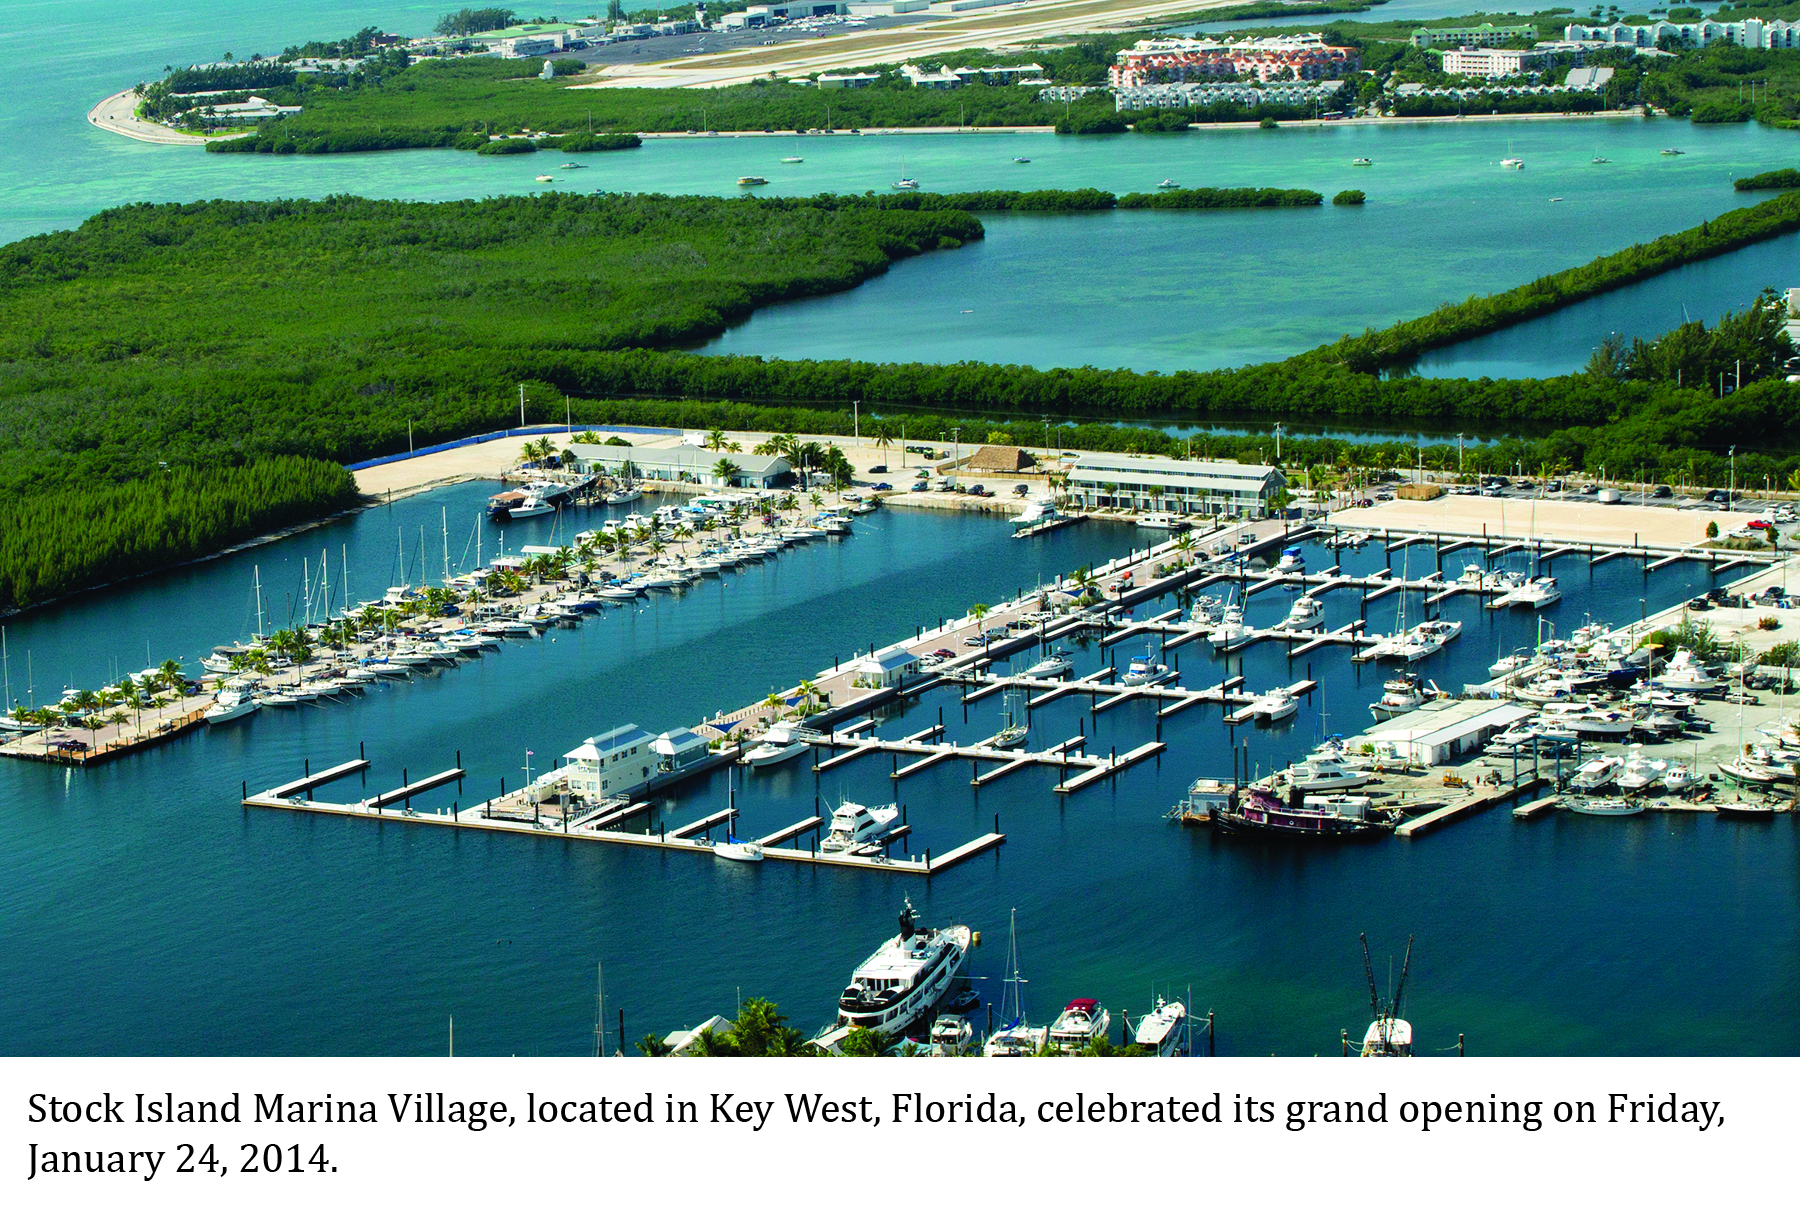 Aerial view of Stock Island Marina's concrete docks